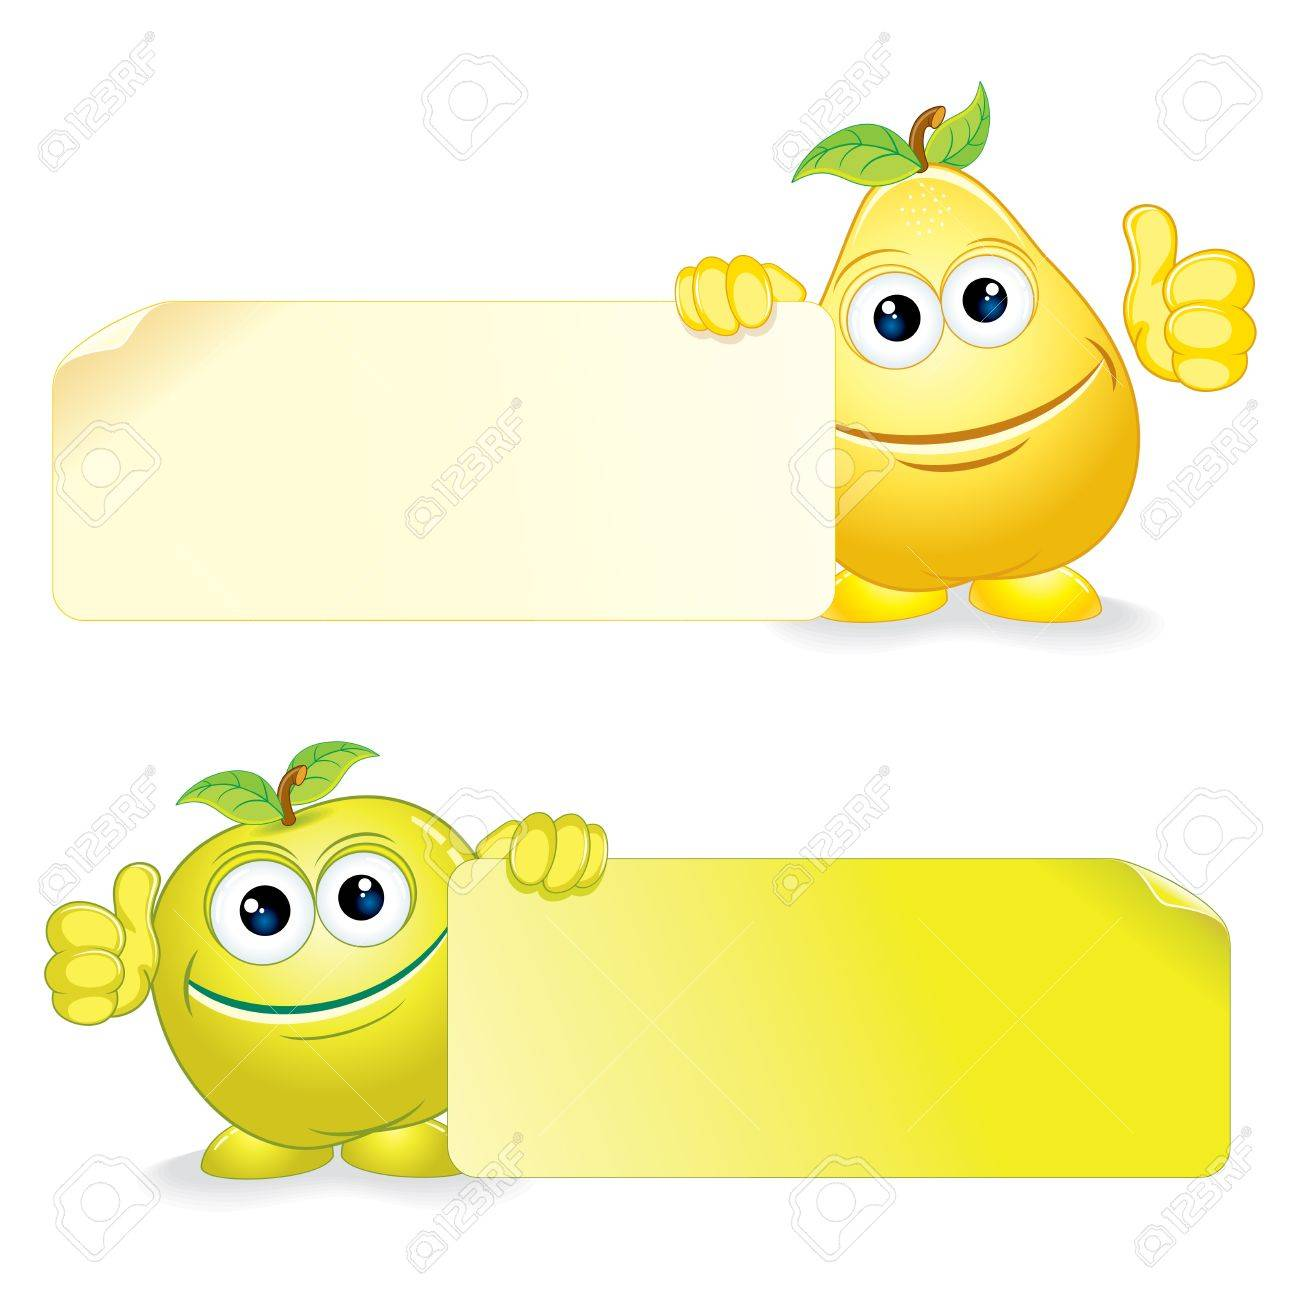 Happy Apple and Pear  Cartoon Fruits with Blank Banner  Vector Clip Art Stock Vector - 15061232